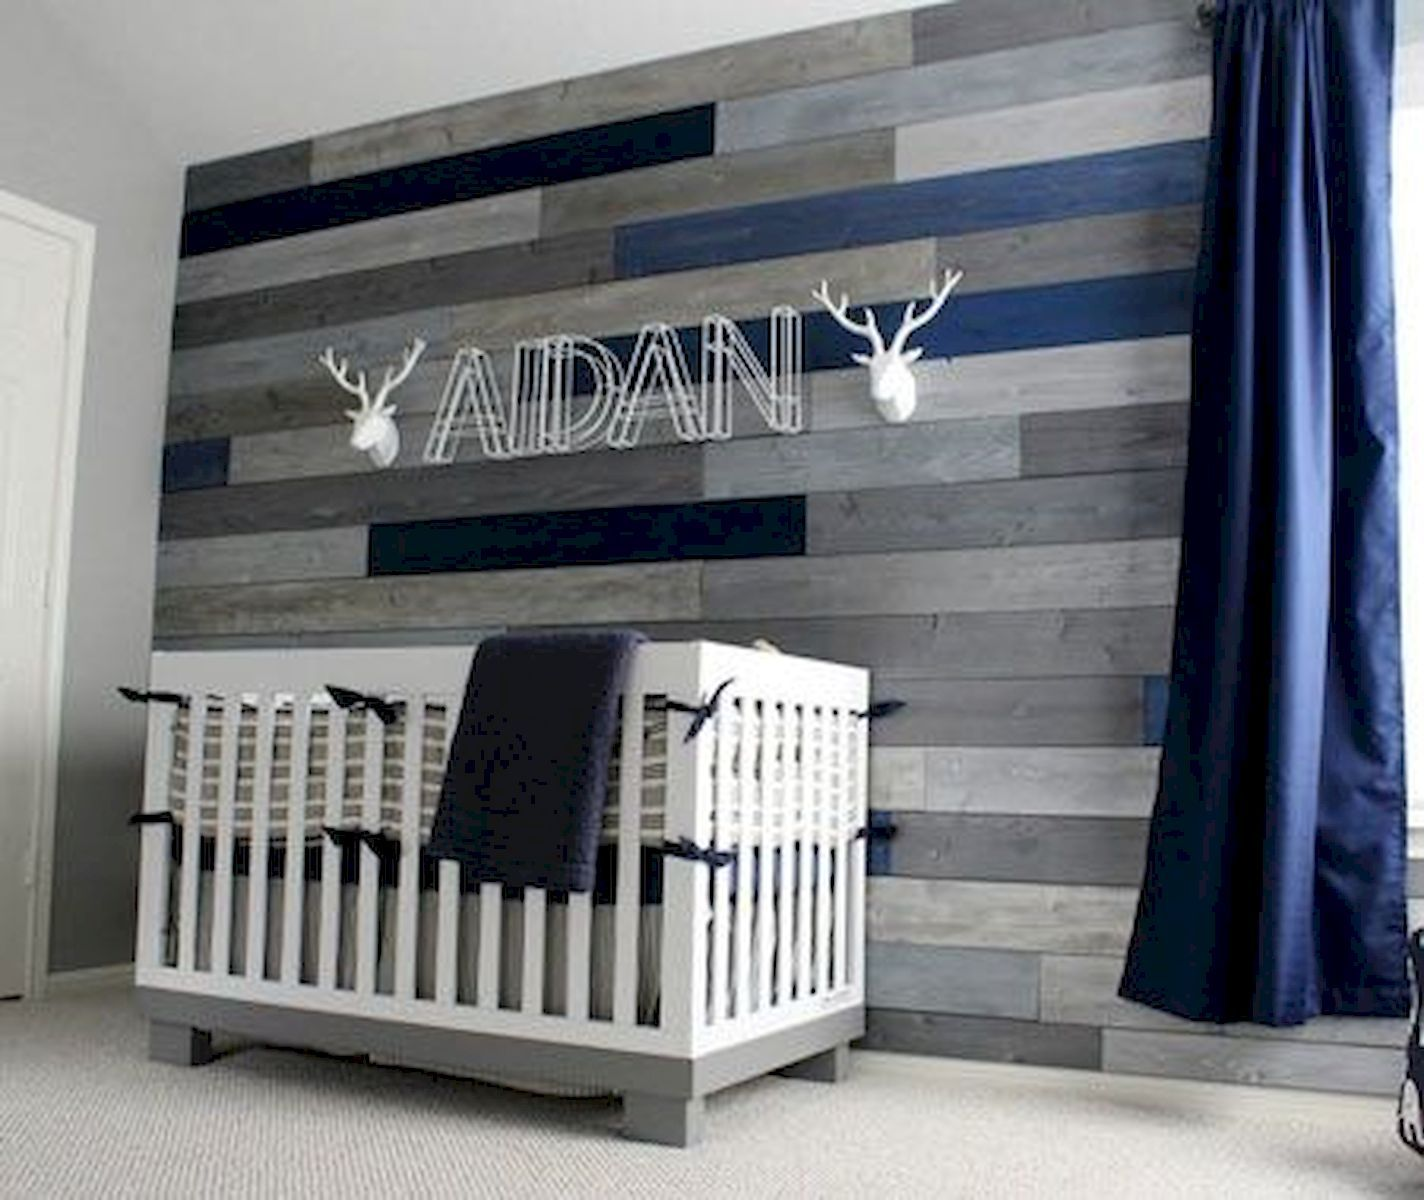 40 Adorable Nursery Room Ideas For Baby Boy images